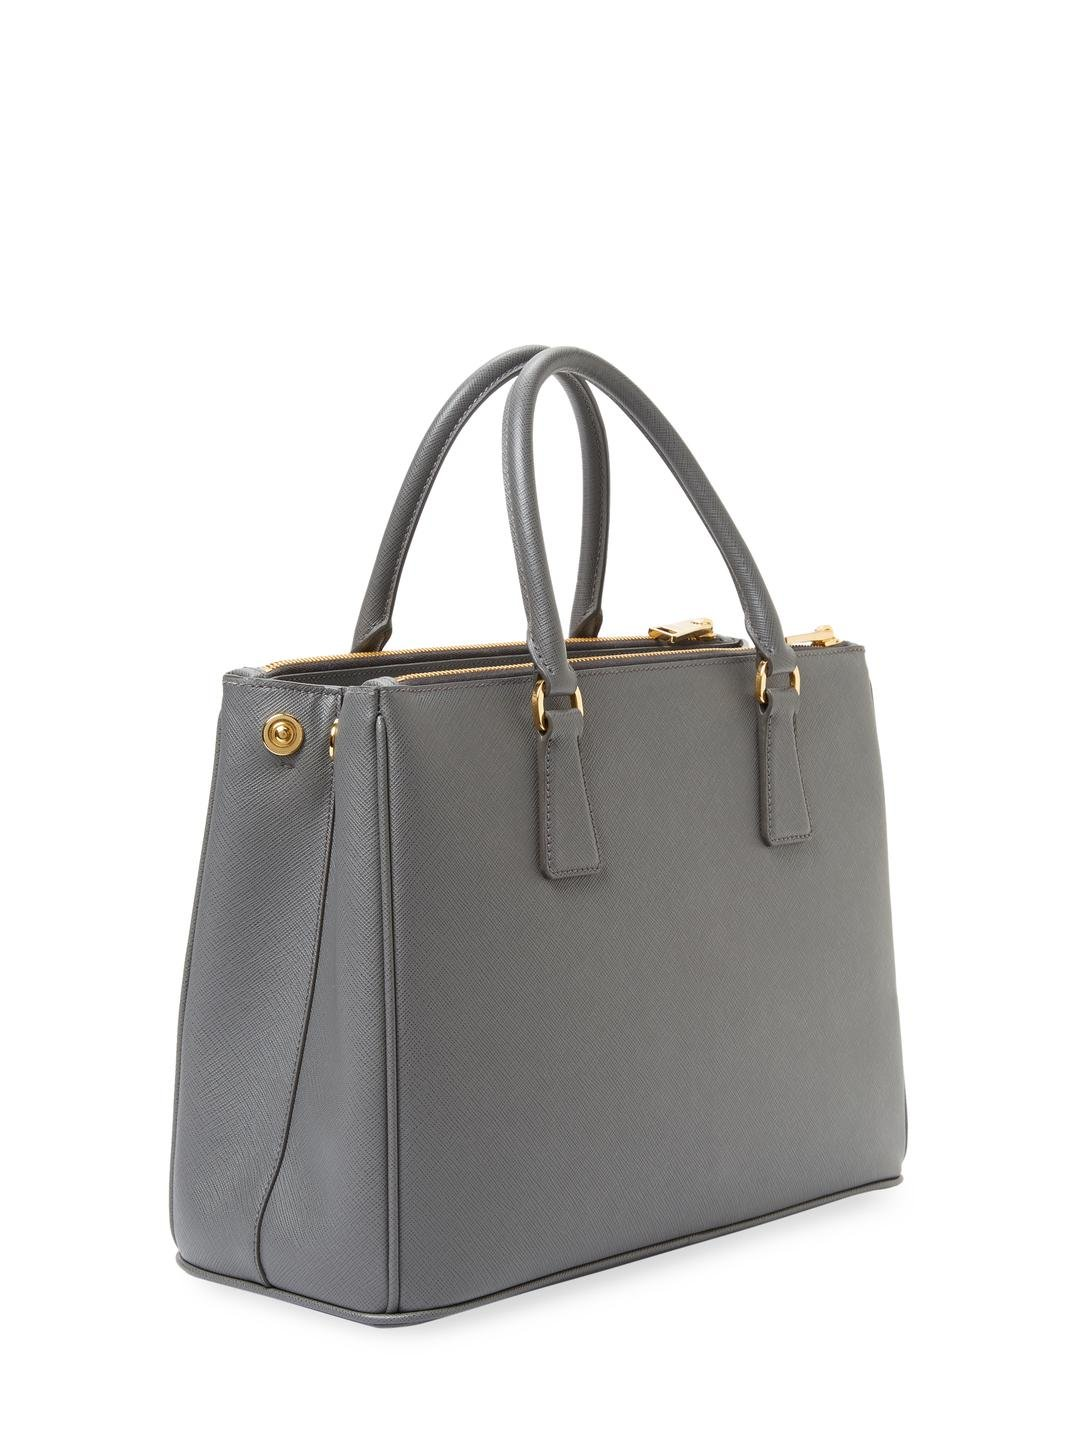 d7b8a8fbc3a2 ... new style lyst prada galleria double zip medium saffiano leather tote  6bdc0 b606c